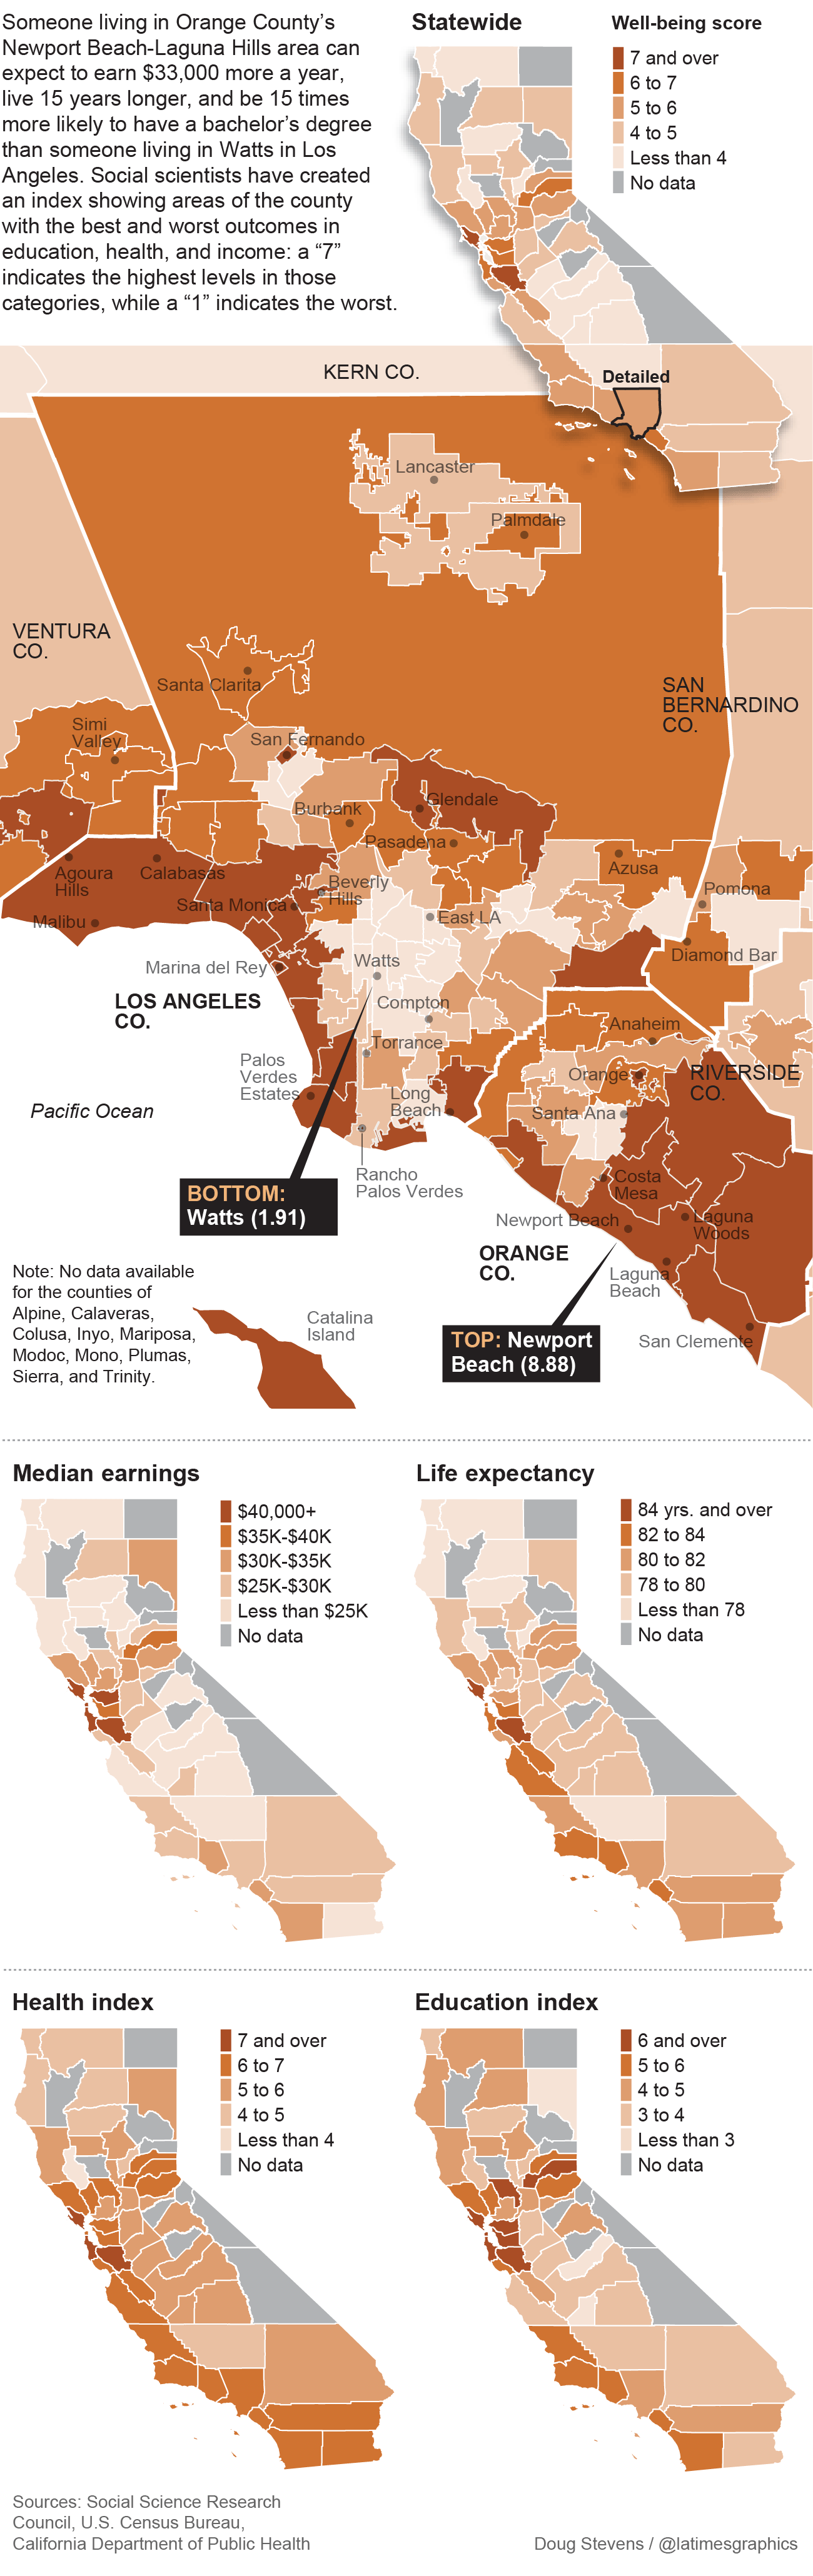 Quality-of-life metrics for L.A. County and surrounds